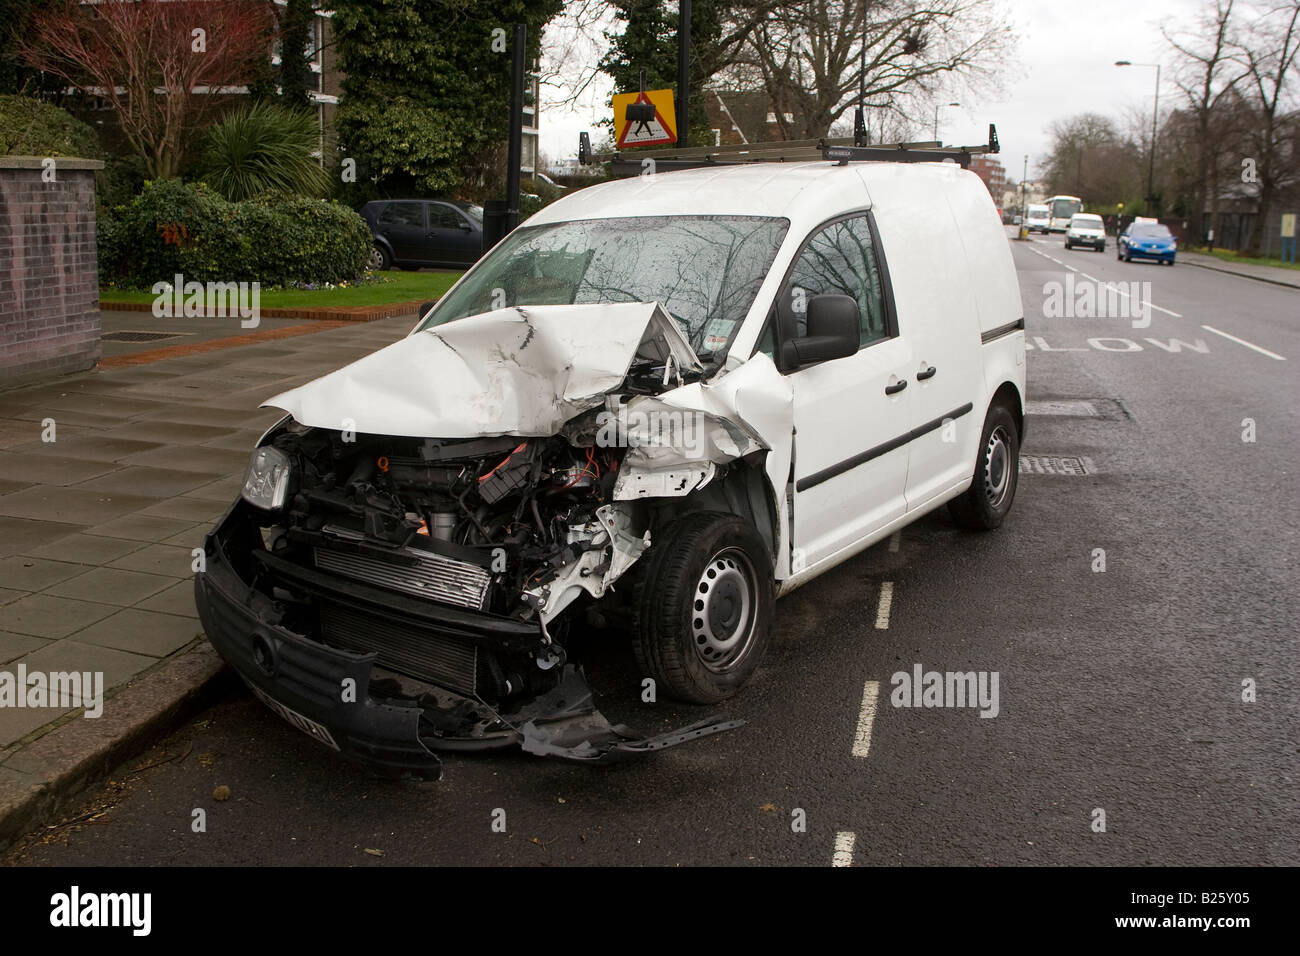 Crashed White Van - Stock Image